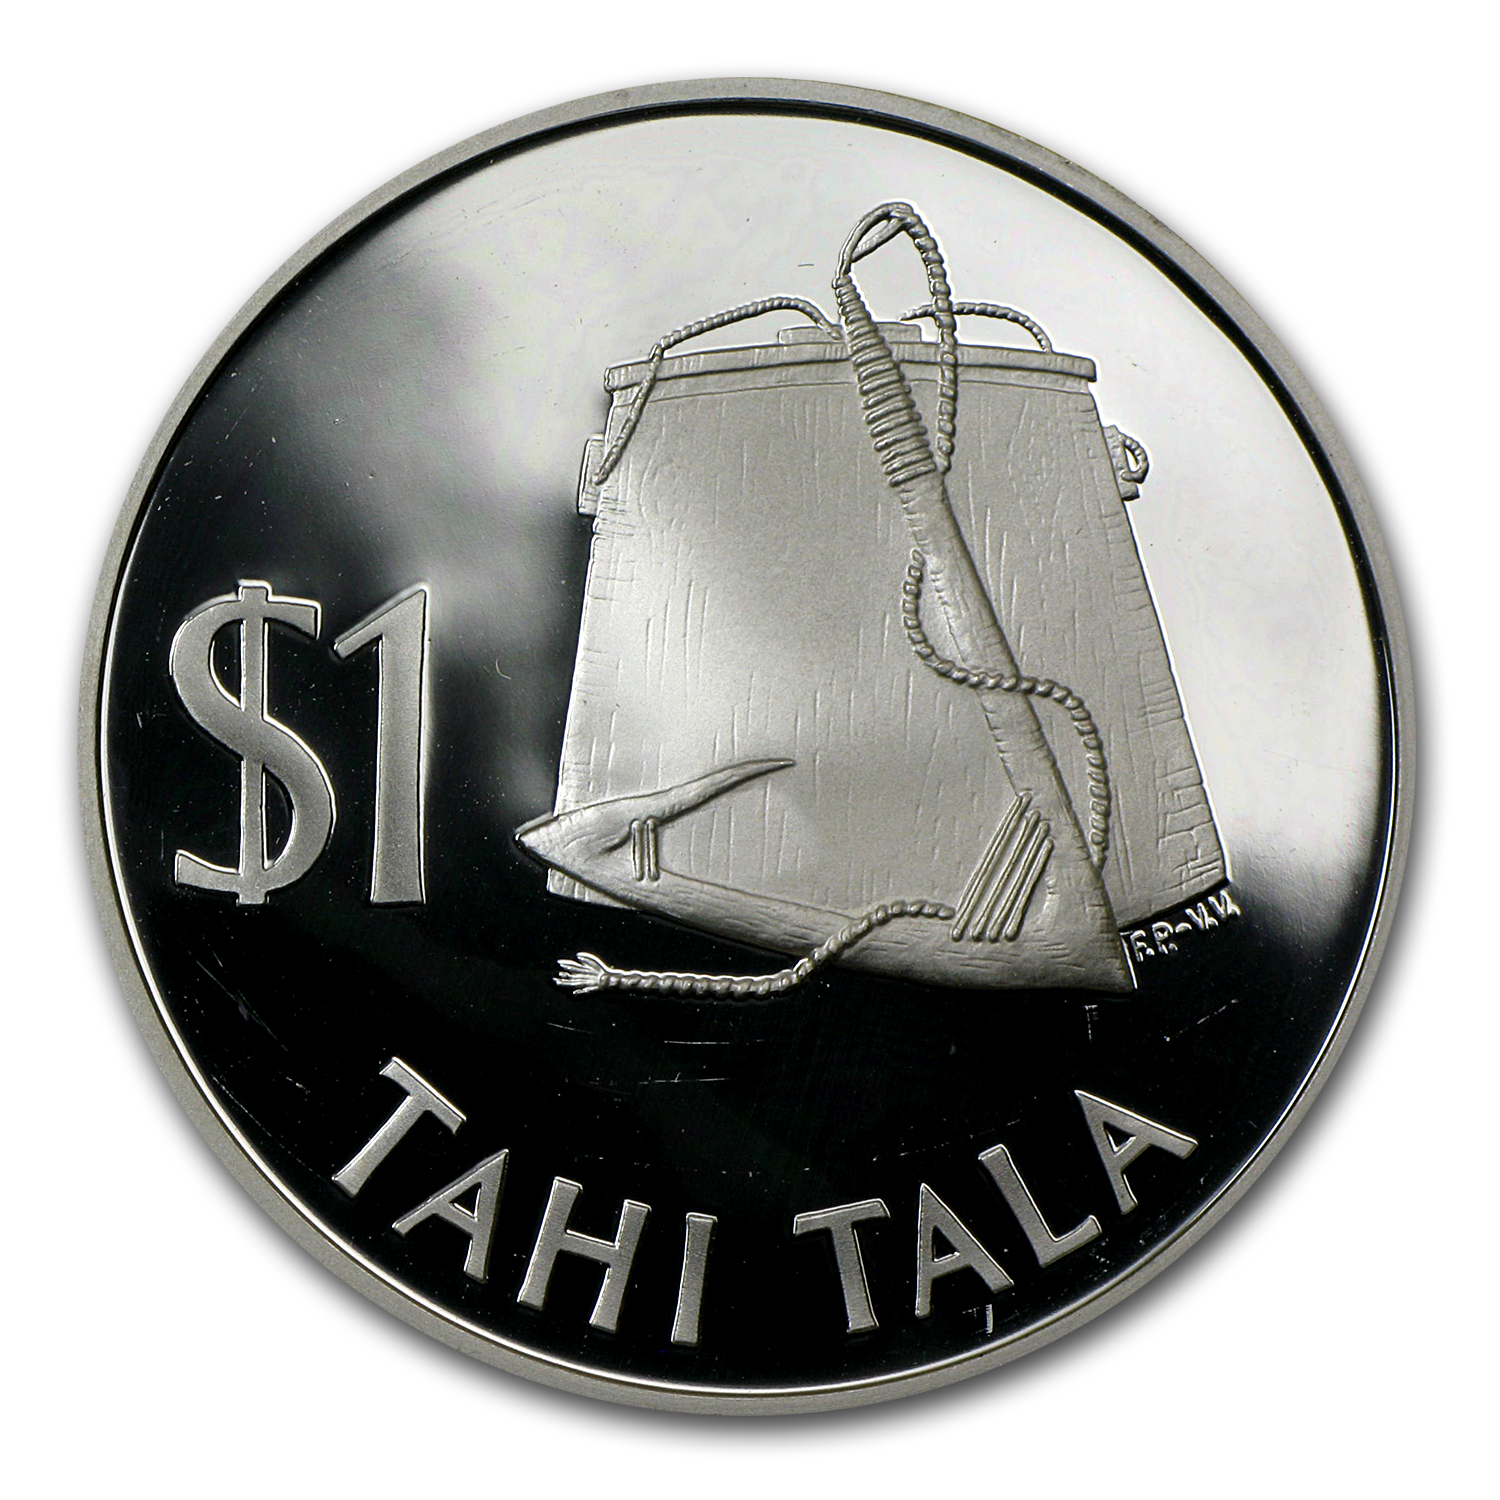 1979 Tokelau Silver 1 Tala Tools Proof